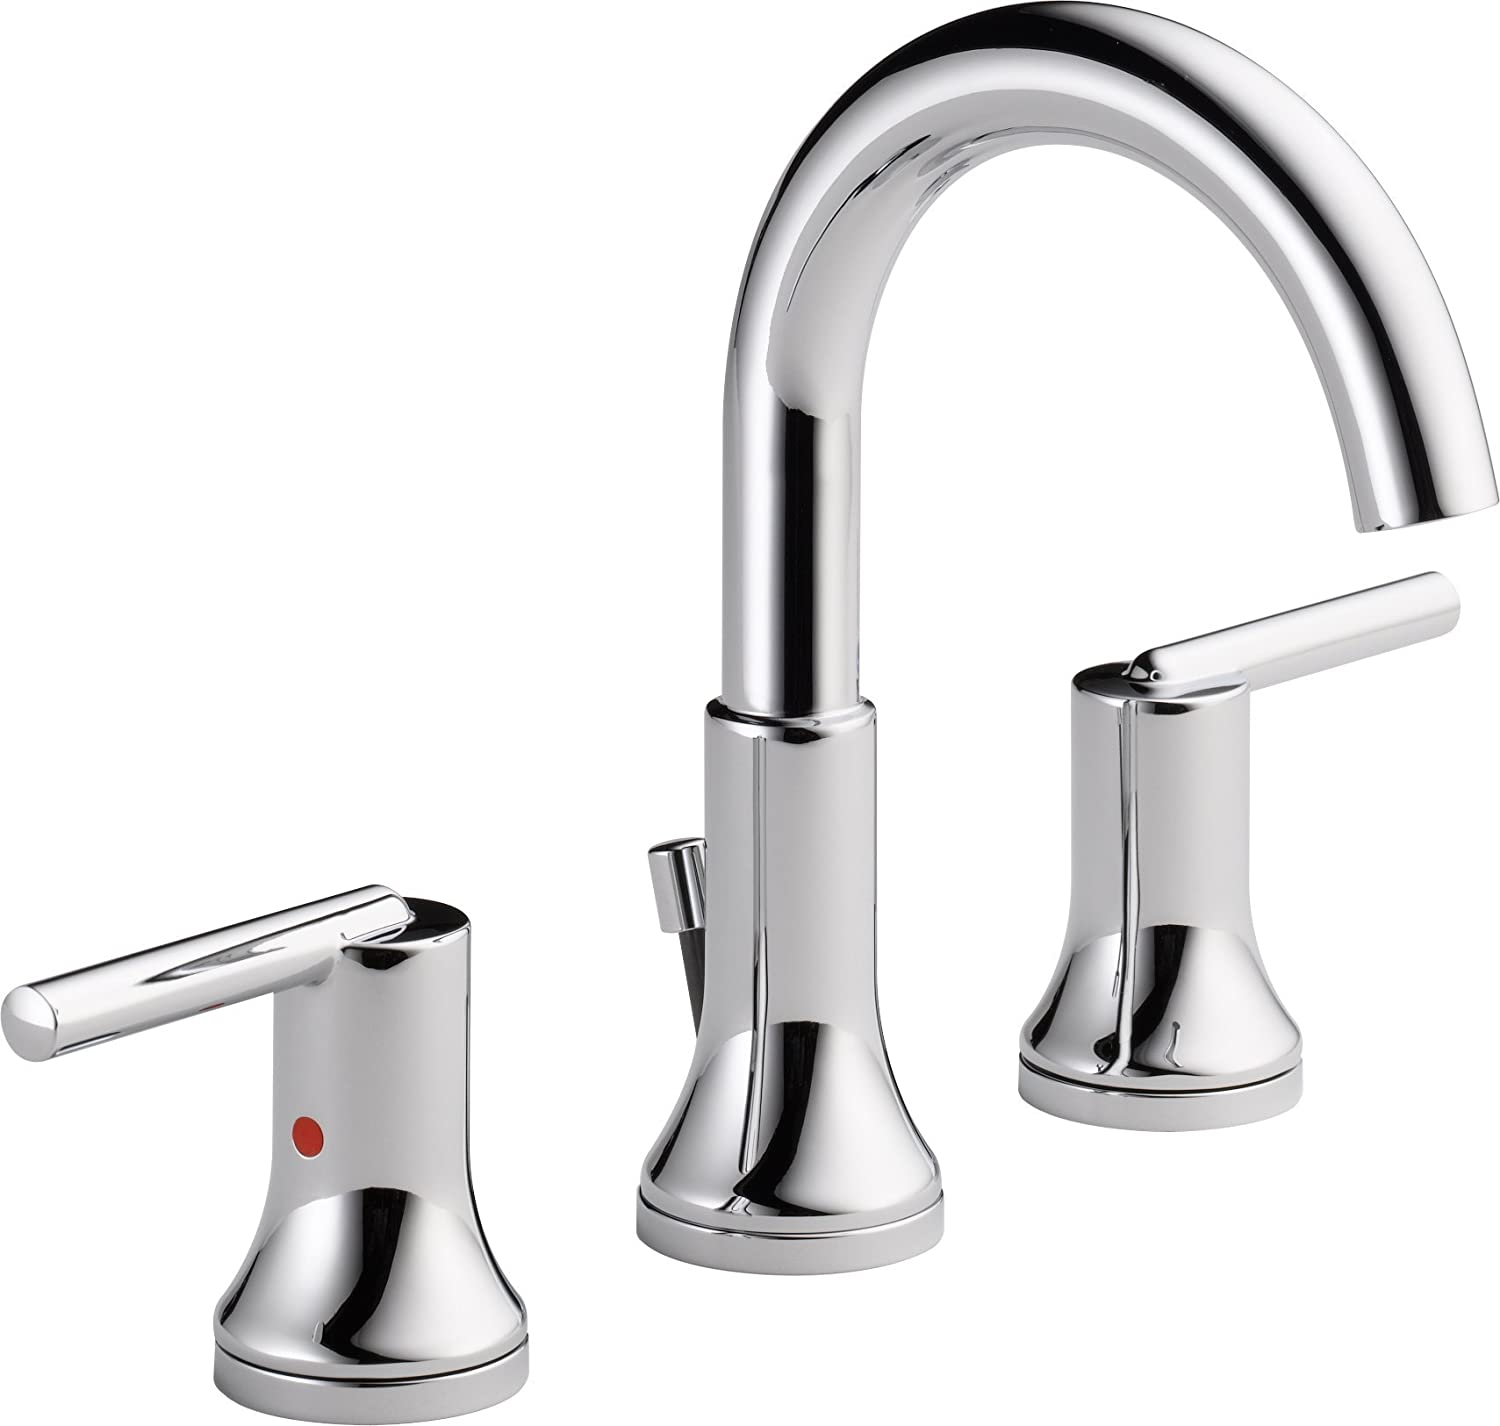 soon with voice com faucets you faucet delta shot image will company pour exclusive credit your am let screen water at